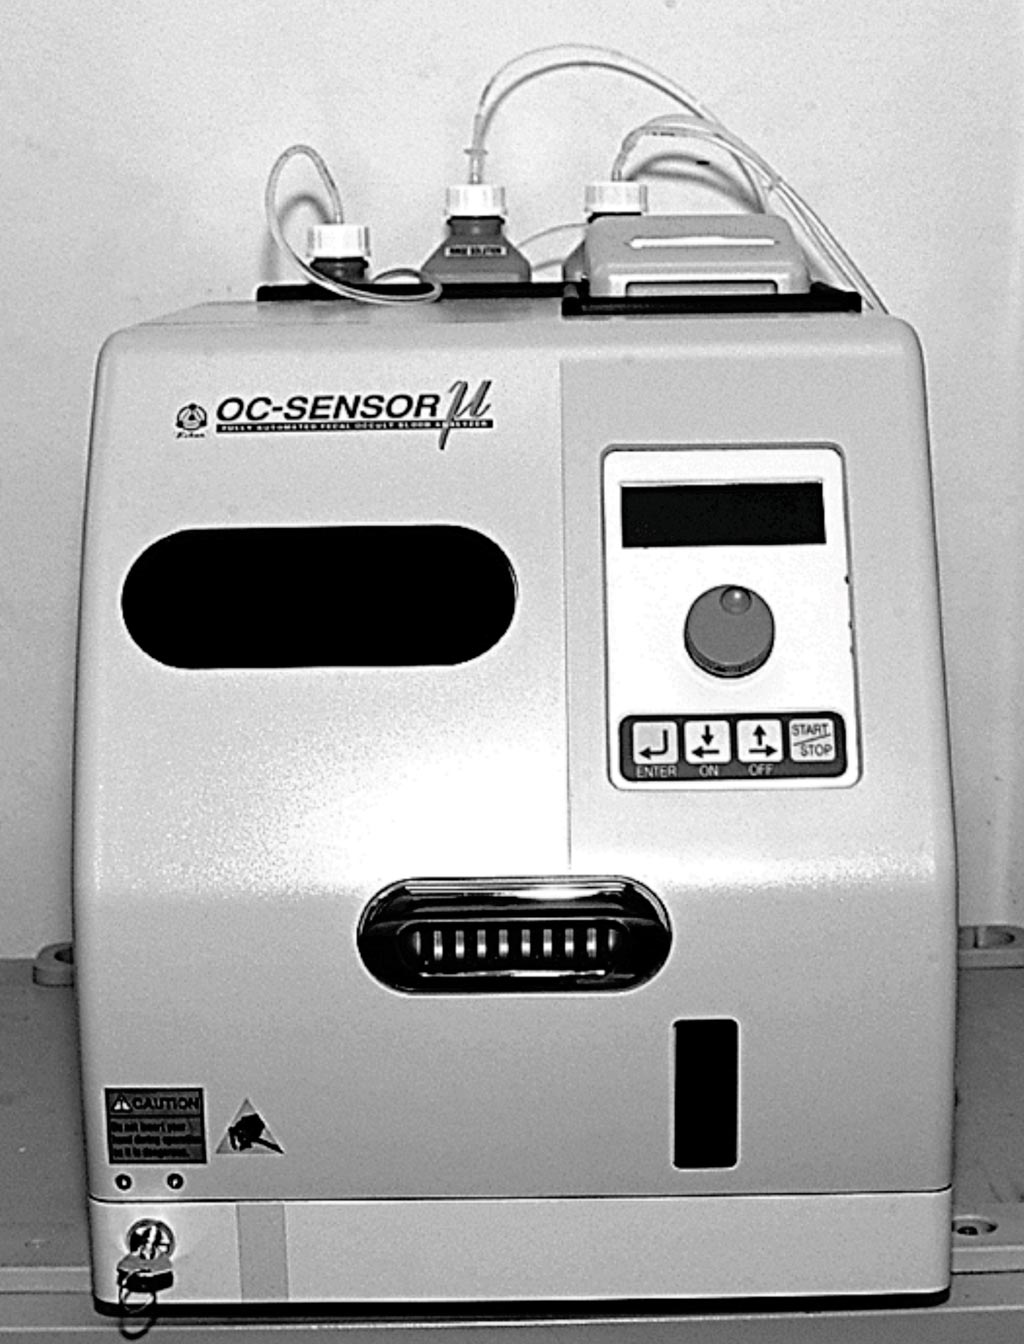 Image: The OC-Sensor apparatus used for the quantitative fecal immunochemical test screening for colorectal cancer (Photo courtesy of Eiken).